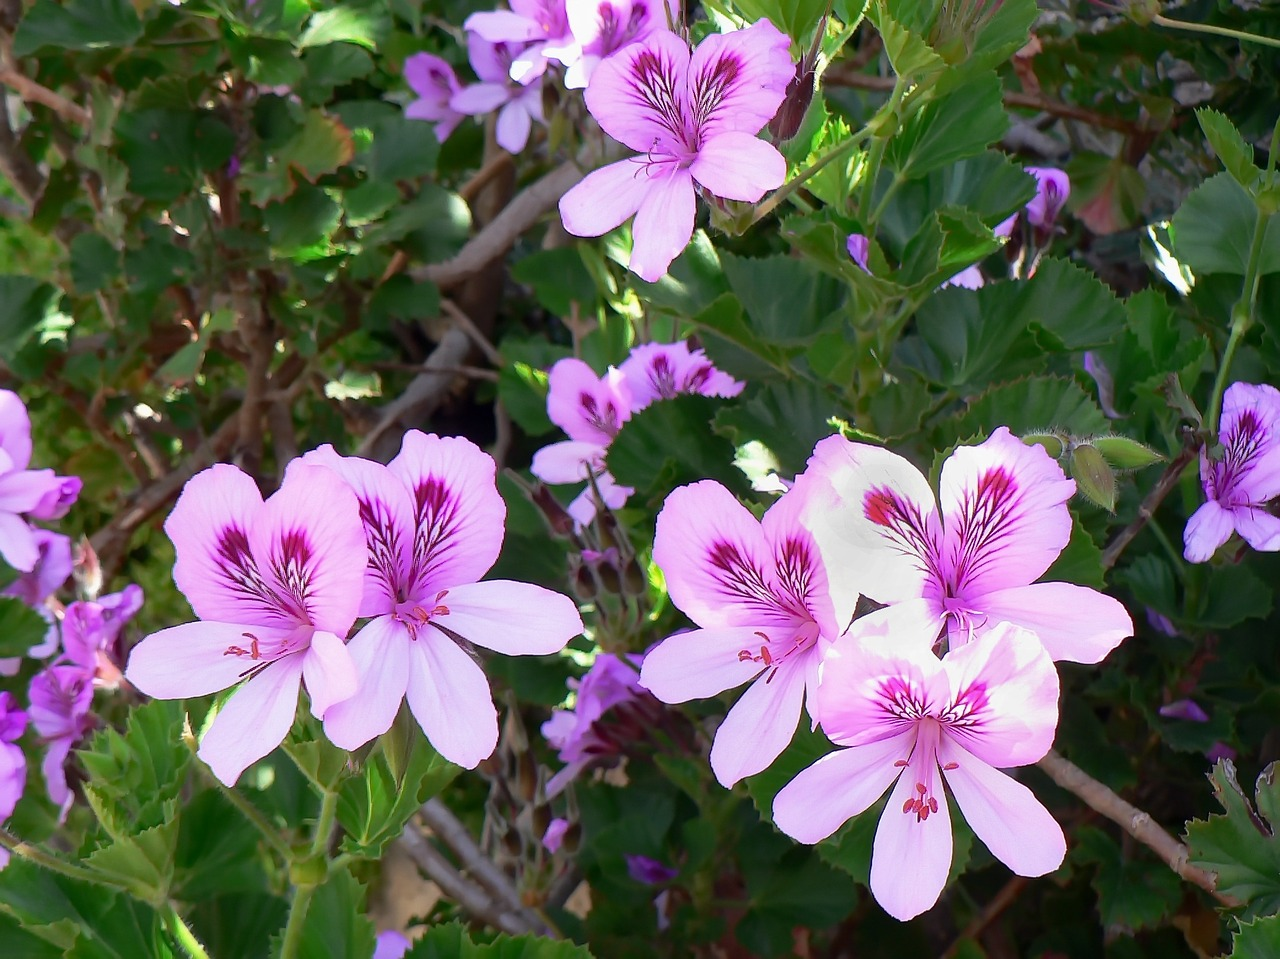 Geranium Rose Essential Oil Properties And Uses